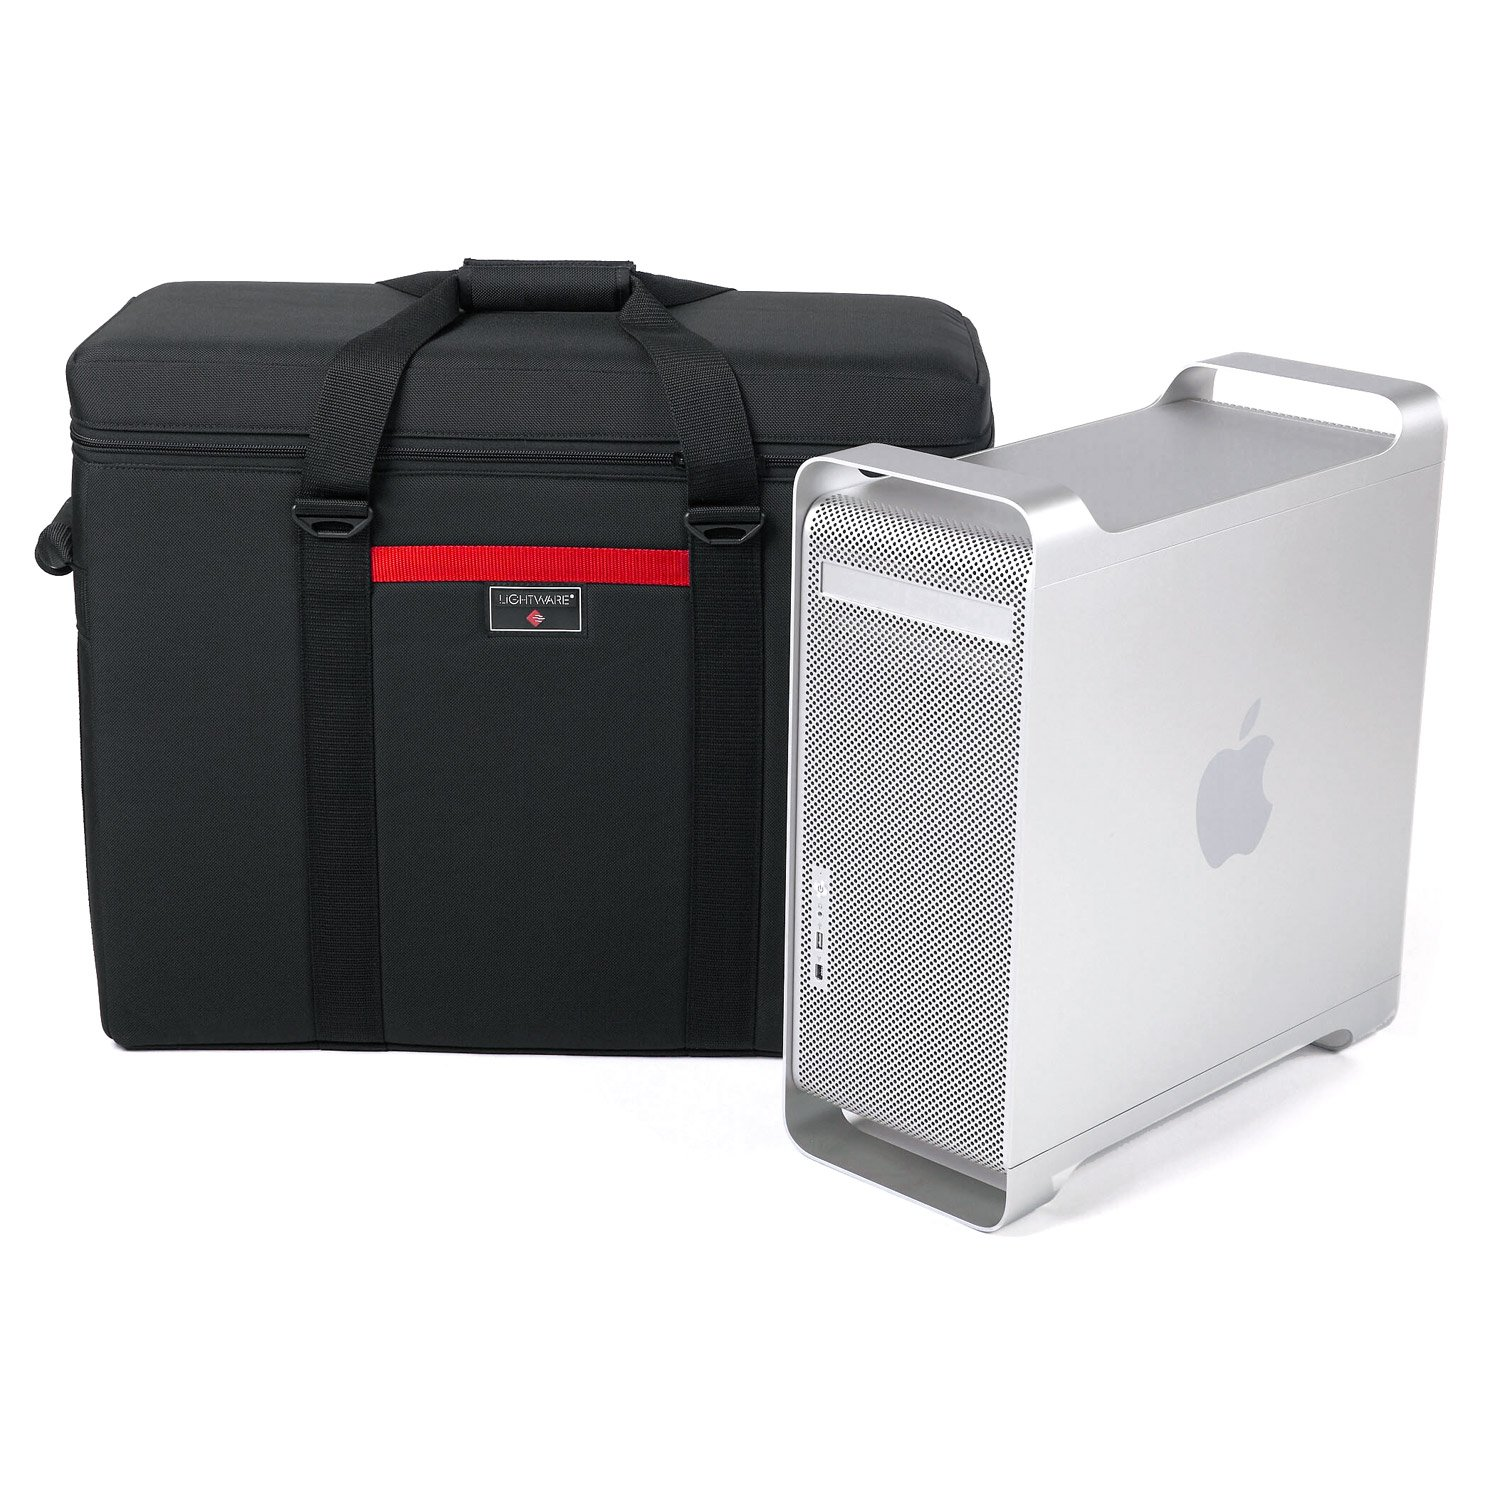 DG5001 | Apple G5 Tower Case